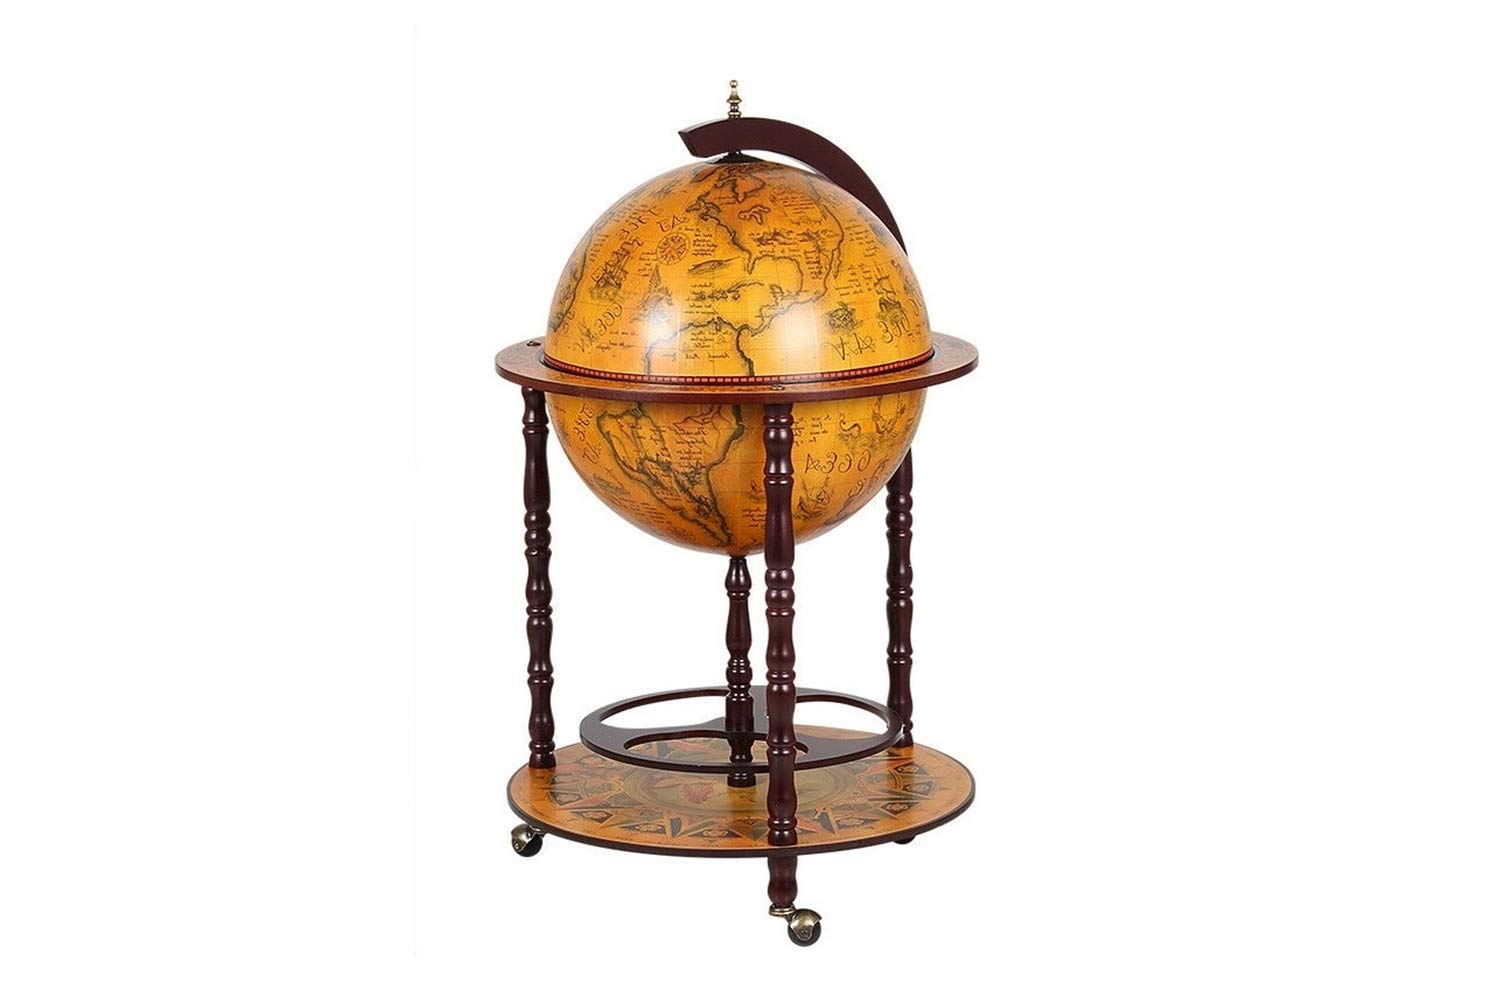 LungMongKol Shop Wooden Vintage Orb Dispenser Liquor Whiskey Wine Reddish Brown Storage with Wheels 16th-Century Italian Replica Globe Hand-Painted Frescoes Heaven, Old World Map of Earth Sphere